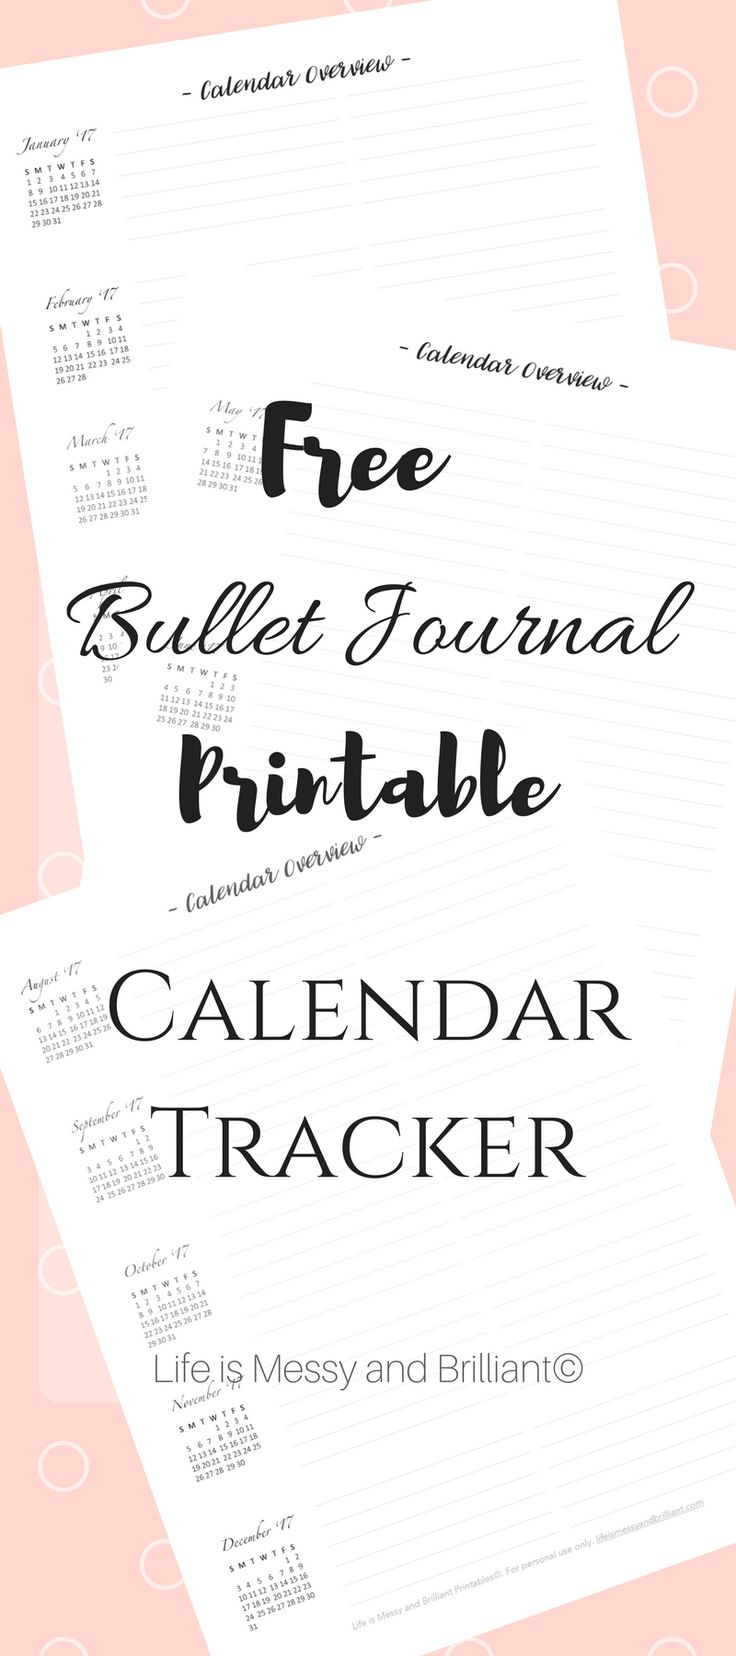 Hello, there! Over the years, I have tried different calendars and agendas to keep all